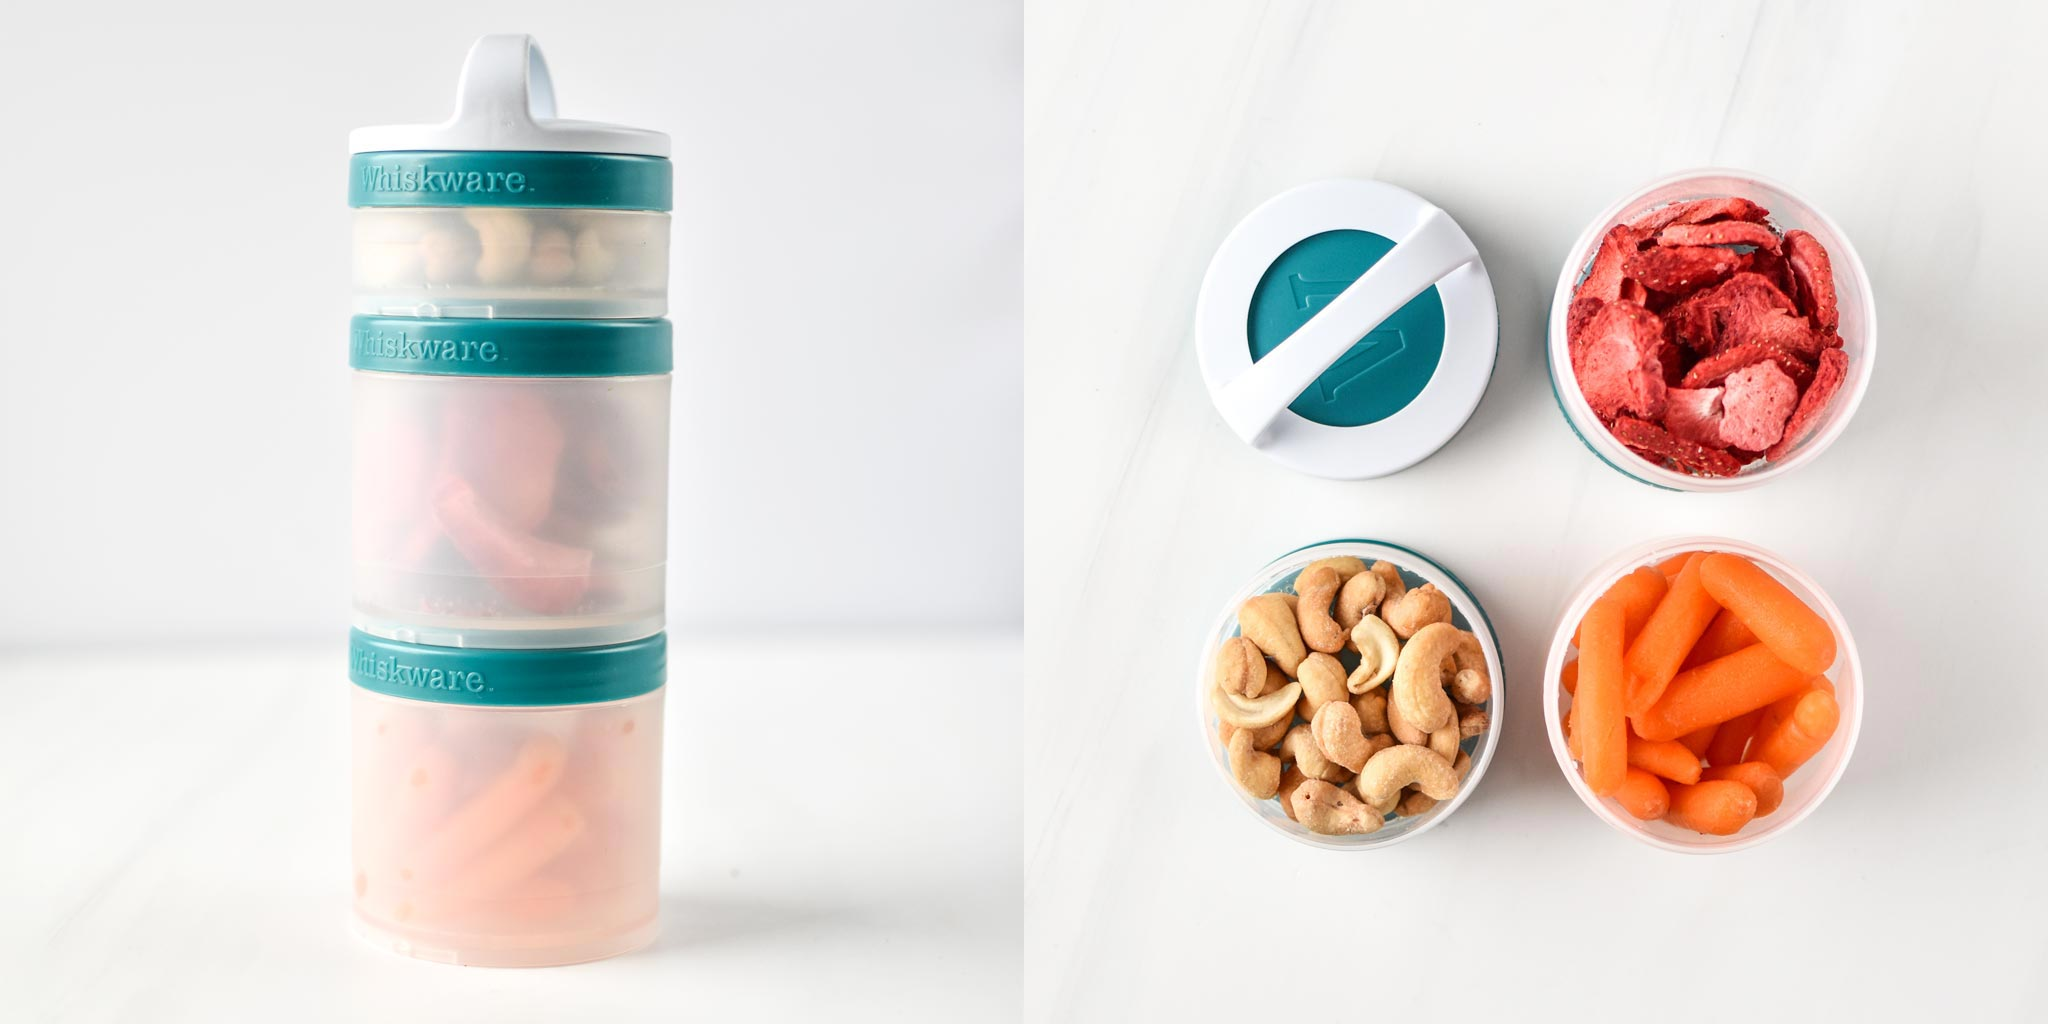 snacks in a whiskware snack container.